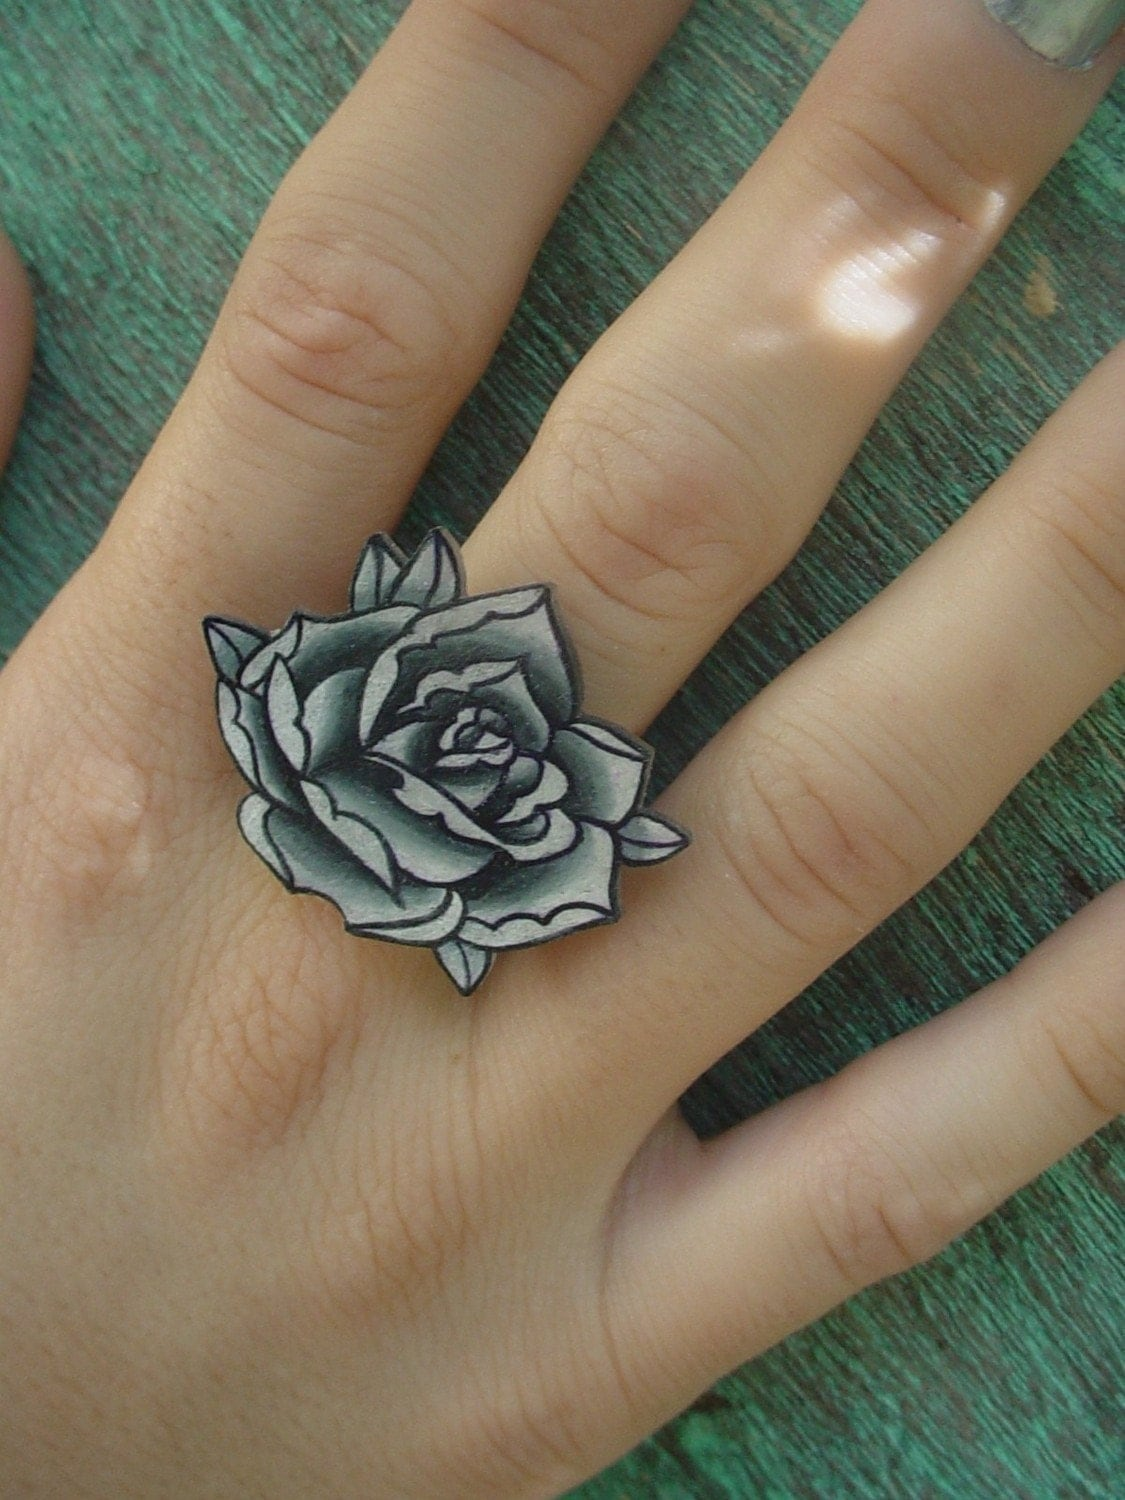 Big Vintage Black And White Surreal Tattoo Rose Ring Ideas And Designs